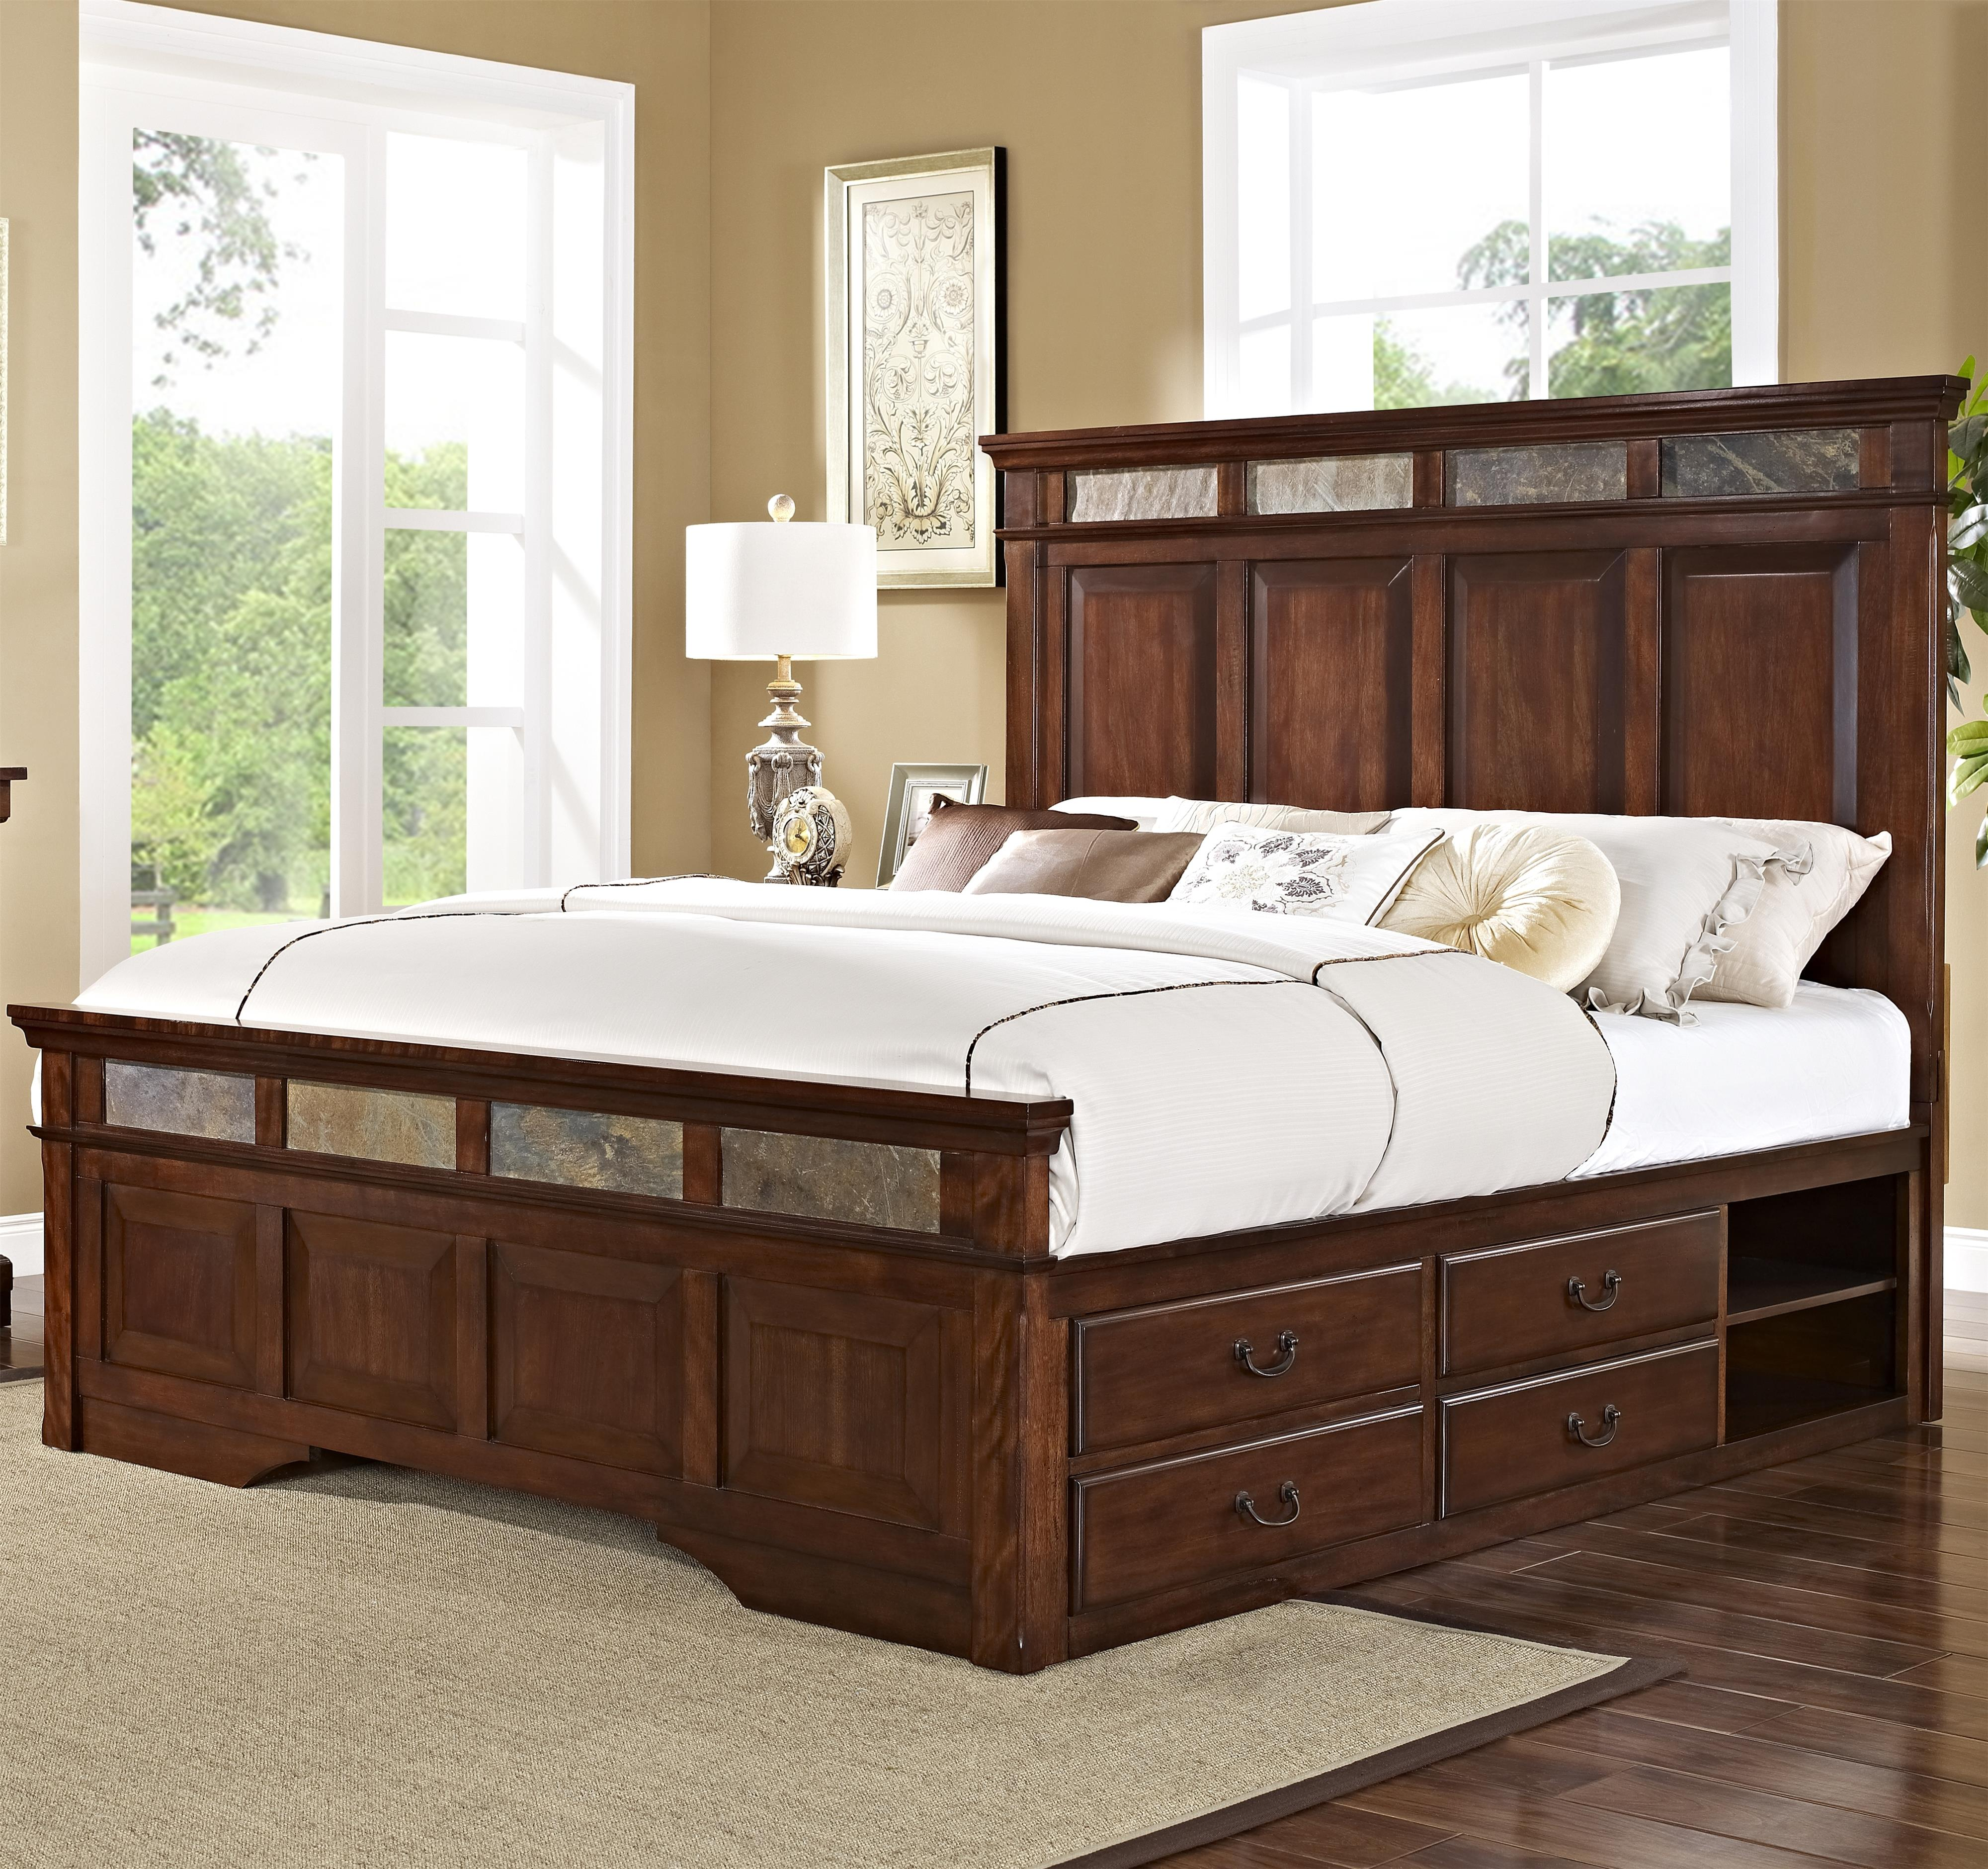 New Classic Madera  Queen Bed with Storage - Item Number: 00-455-310+320+337+338